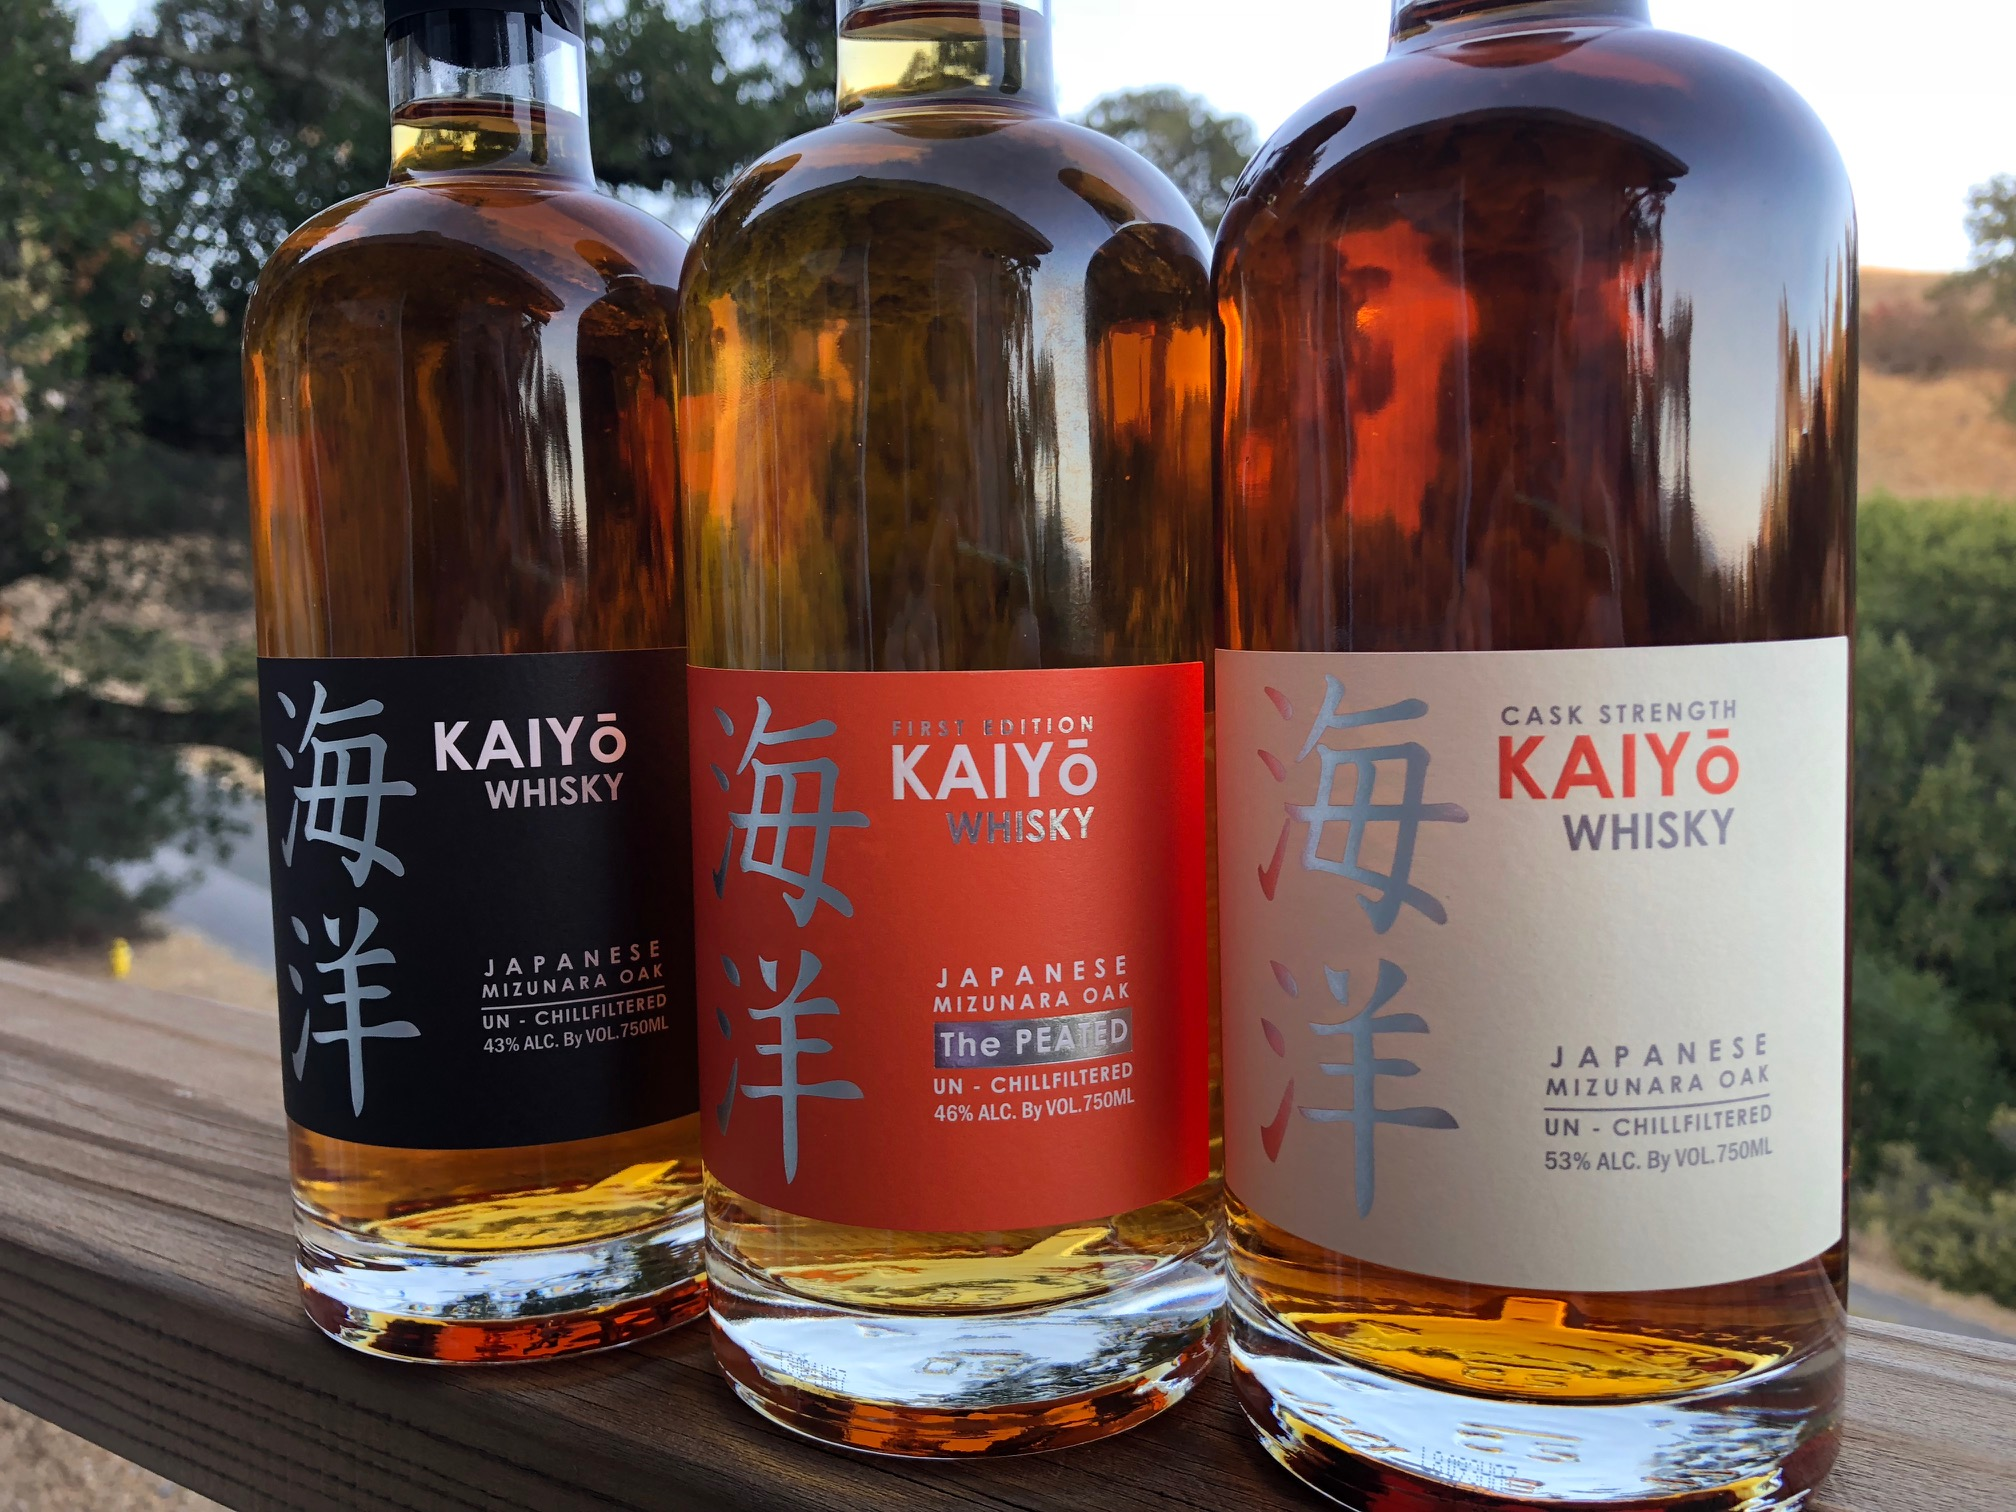 Kaiyo Whisky Cask Strength